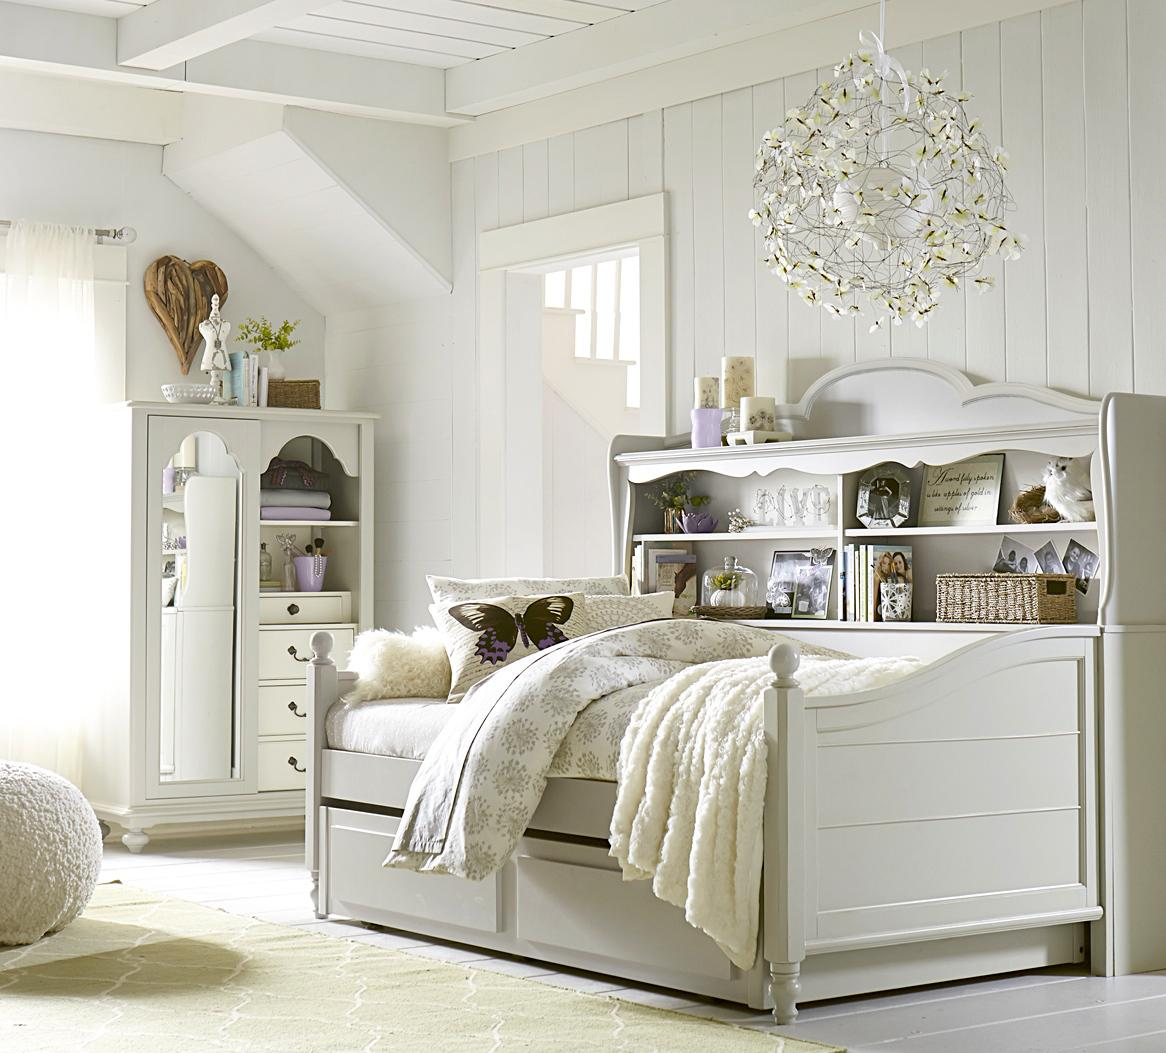 Legacy Classic Kids Inspirations by Wendy Bellissimo Twin Bedroom Group 5 - Item Number: 3830 Twin Bedroom Group 5